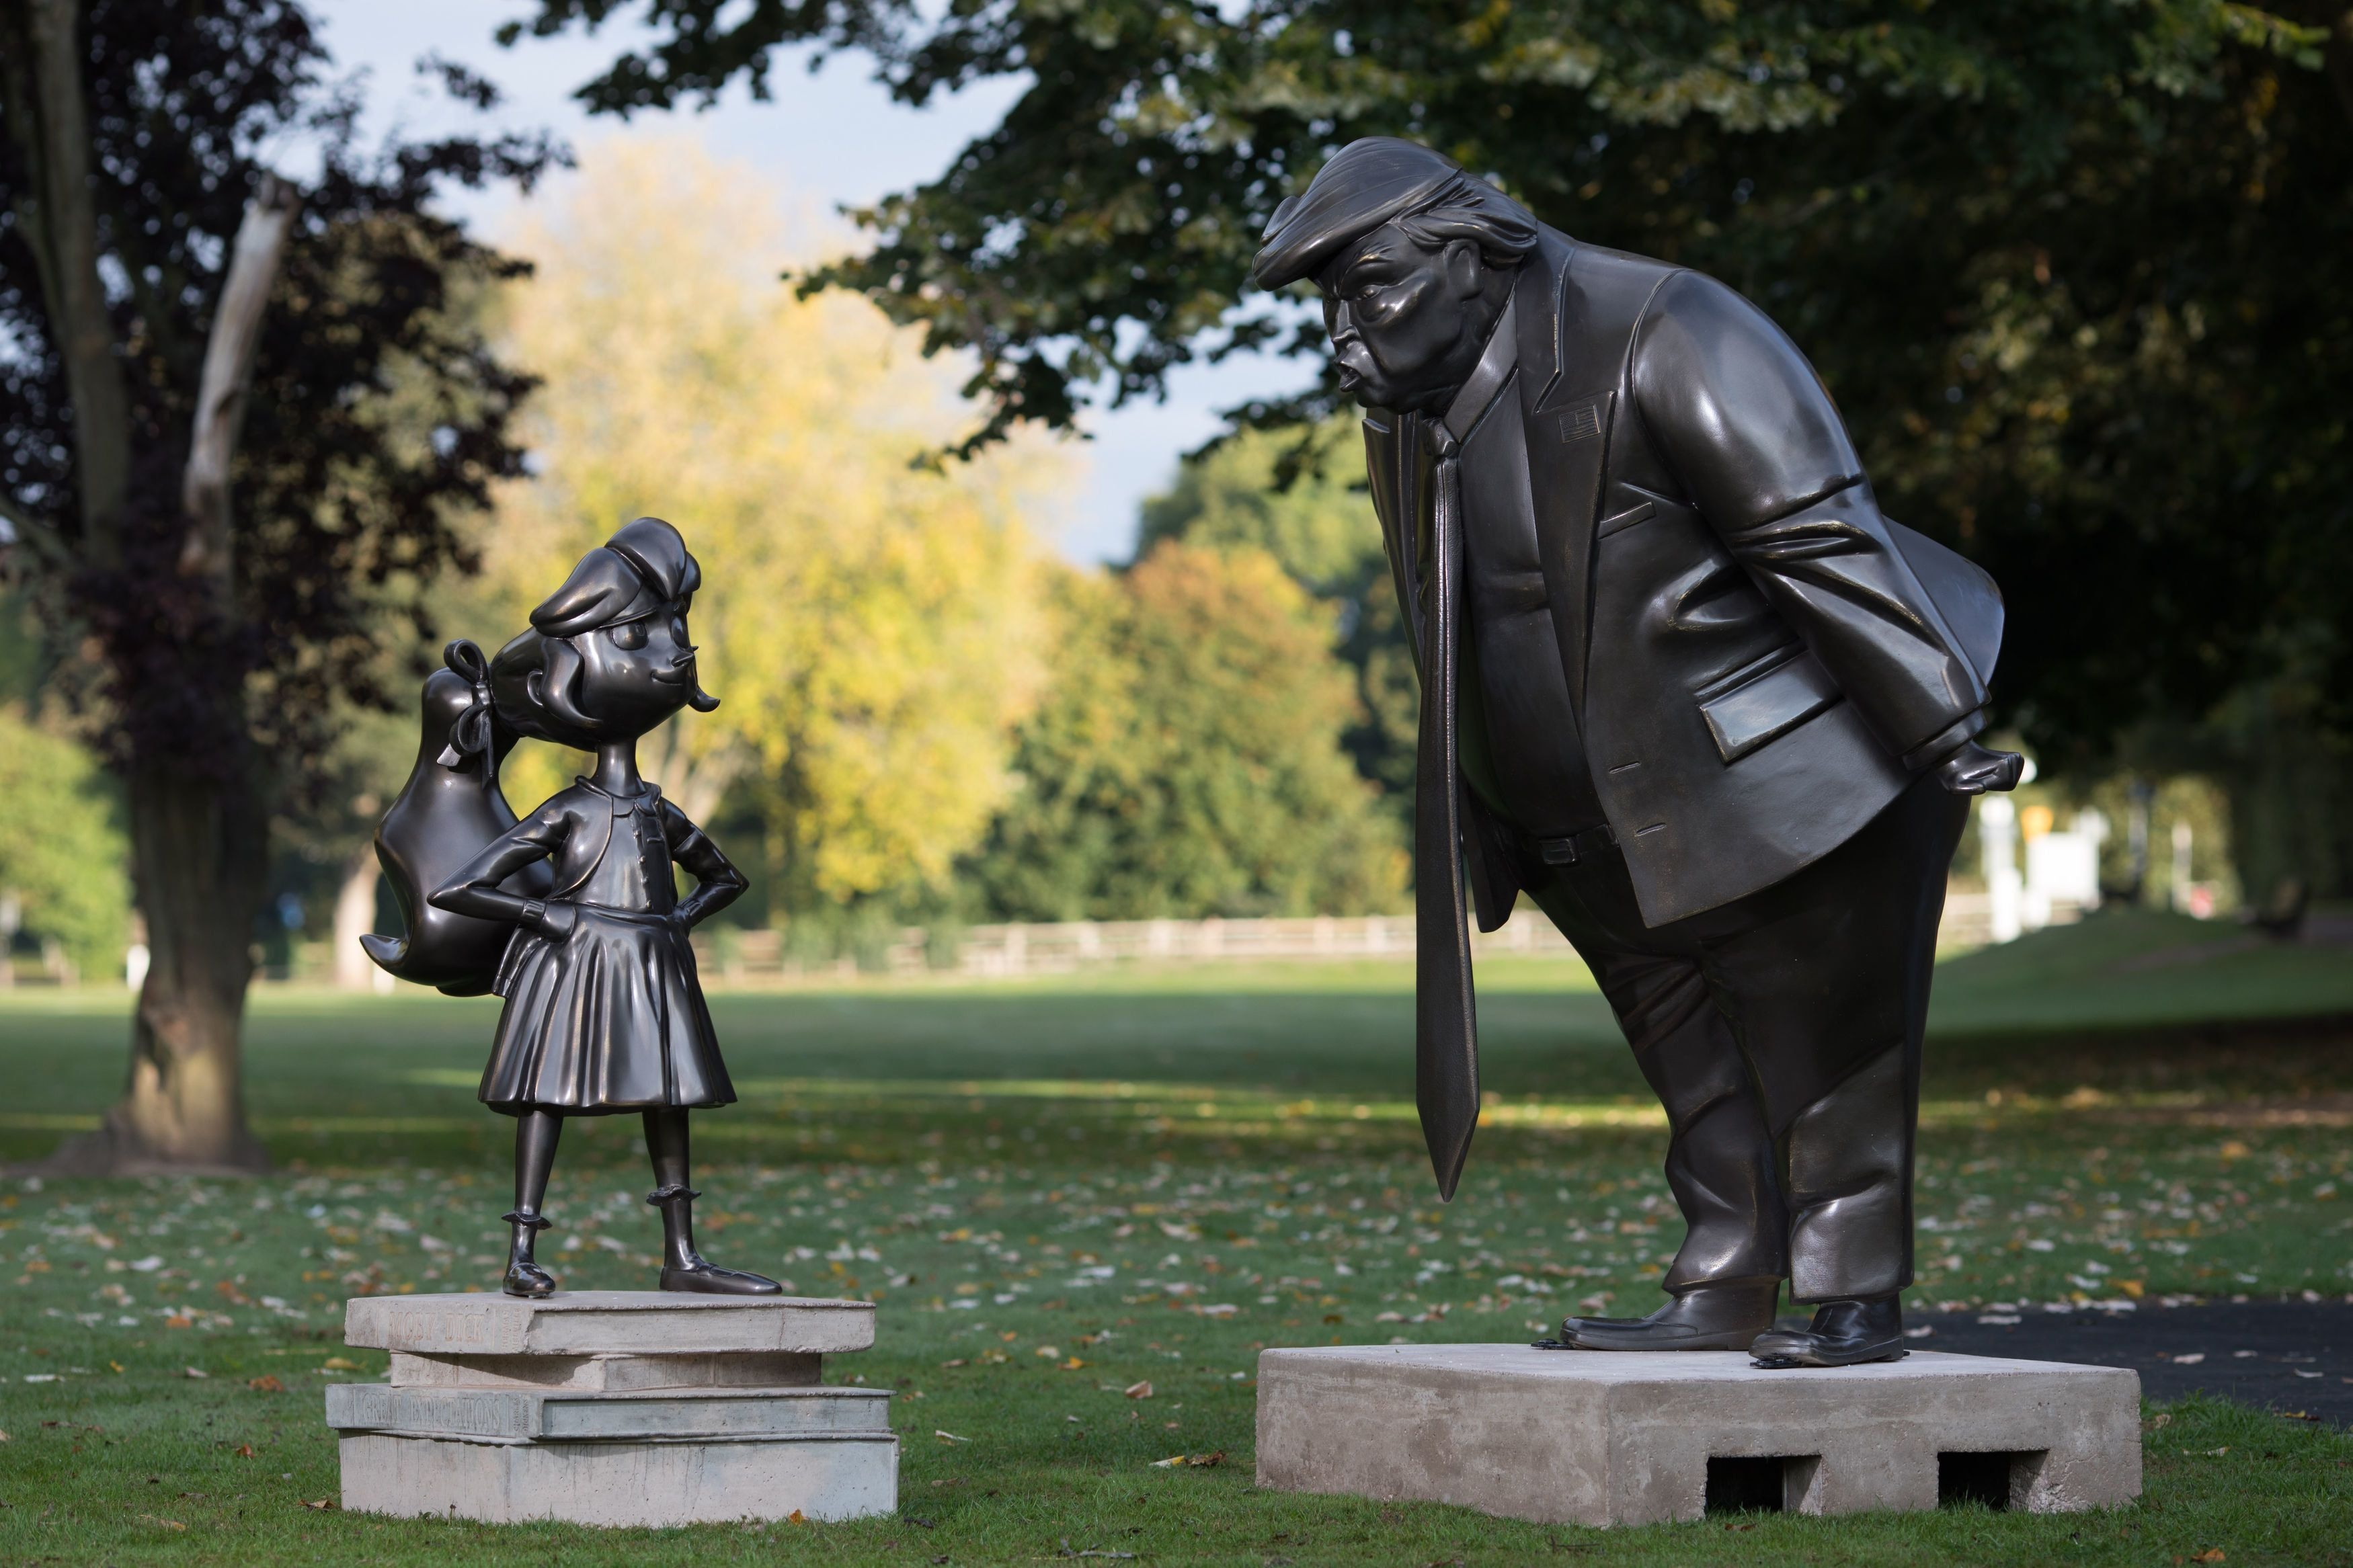 Roald Dahl's Matilda Faces Down Trump in New Statue Installation